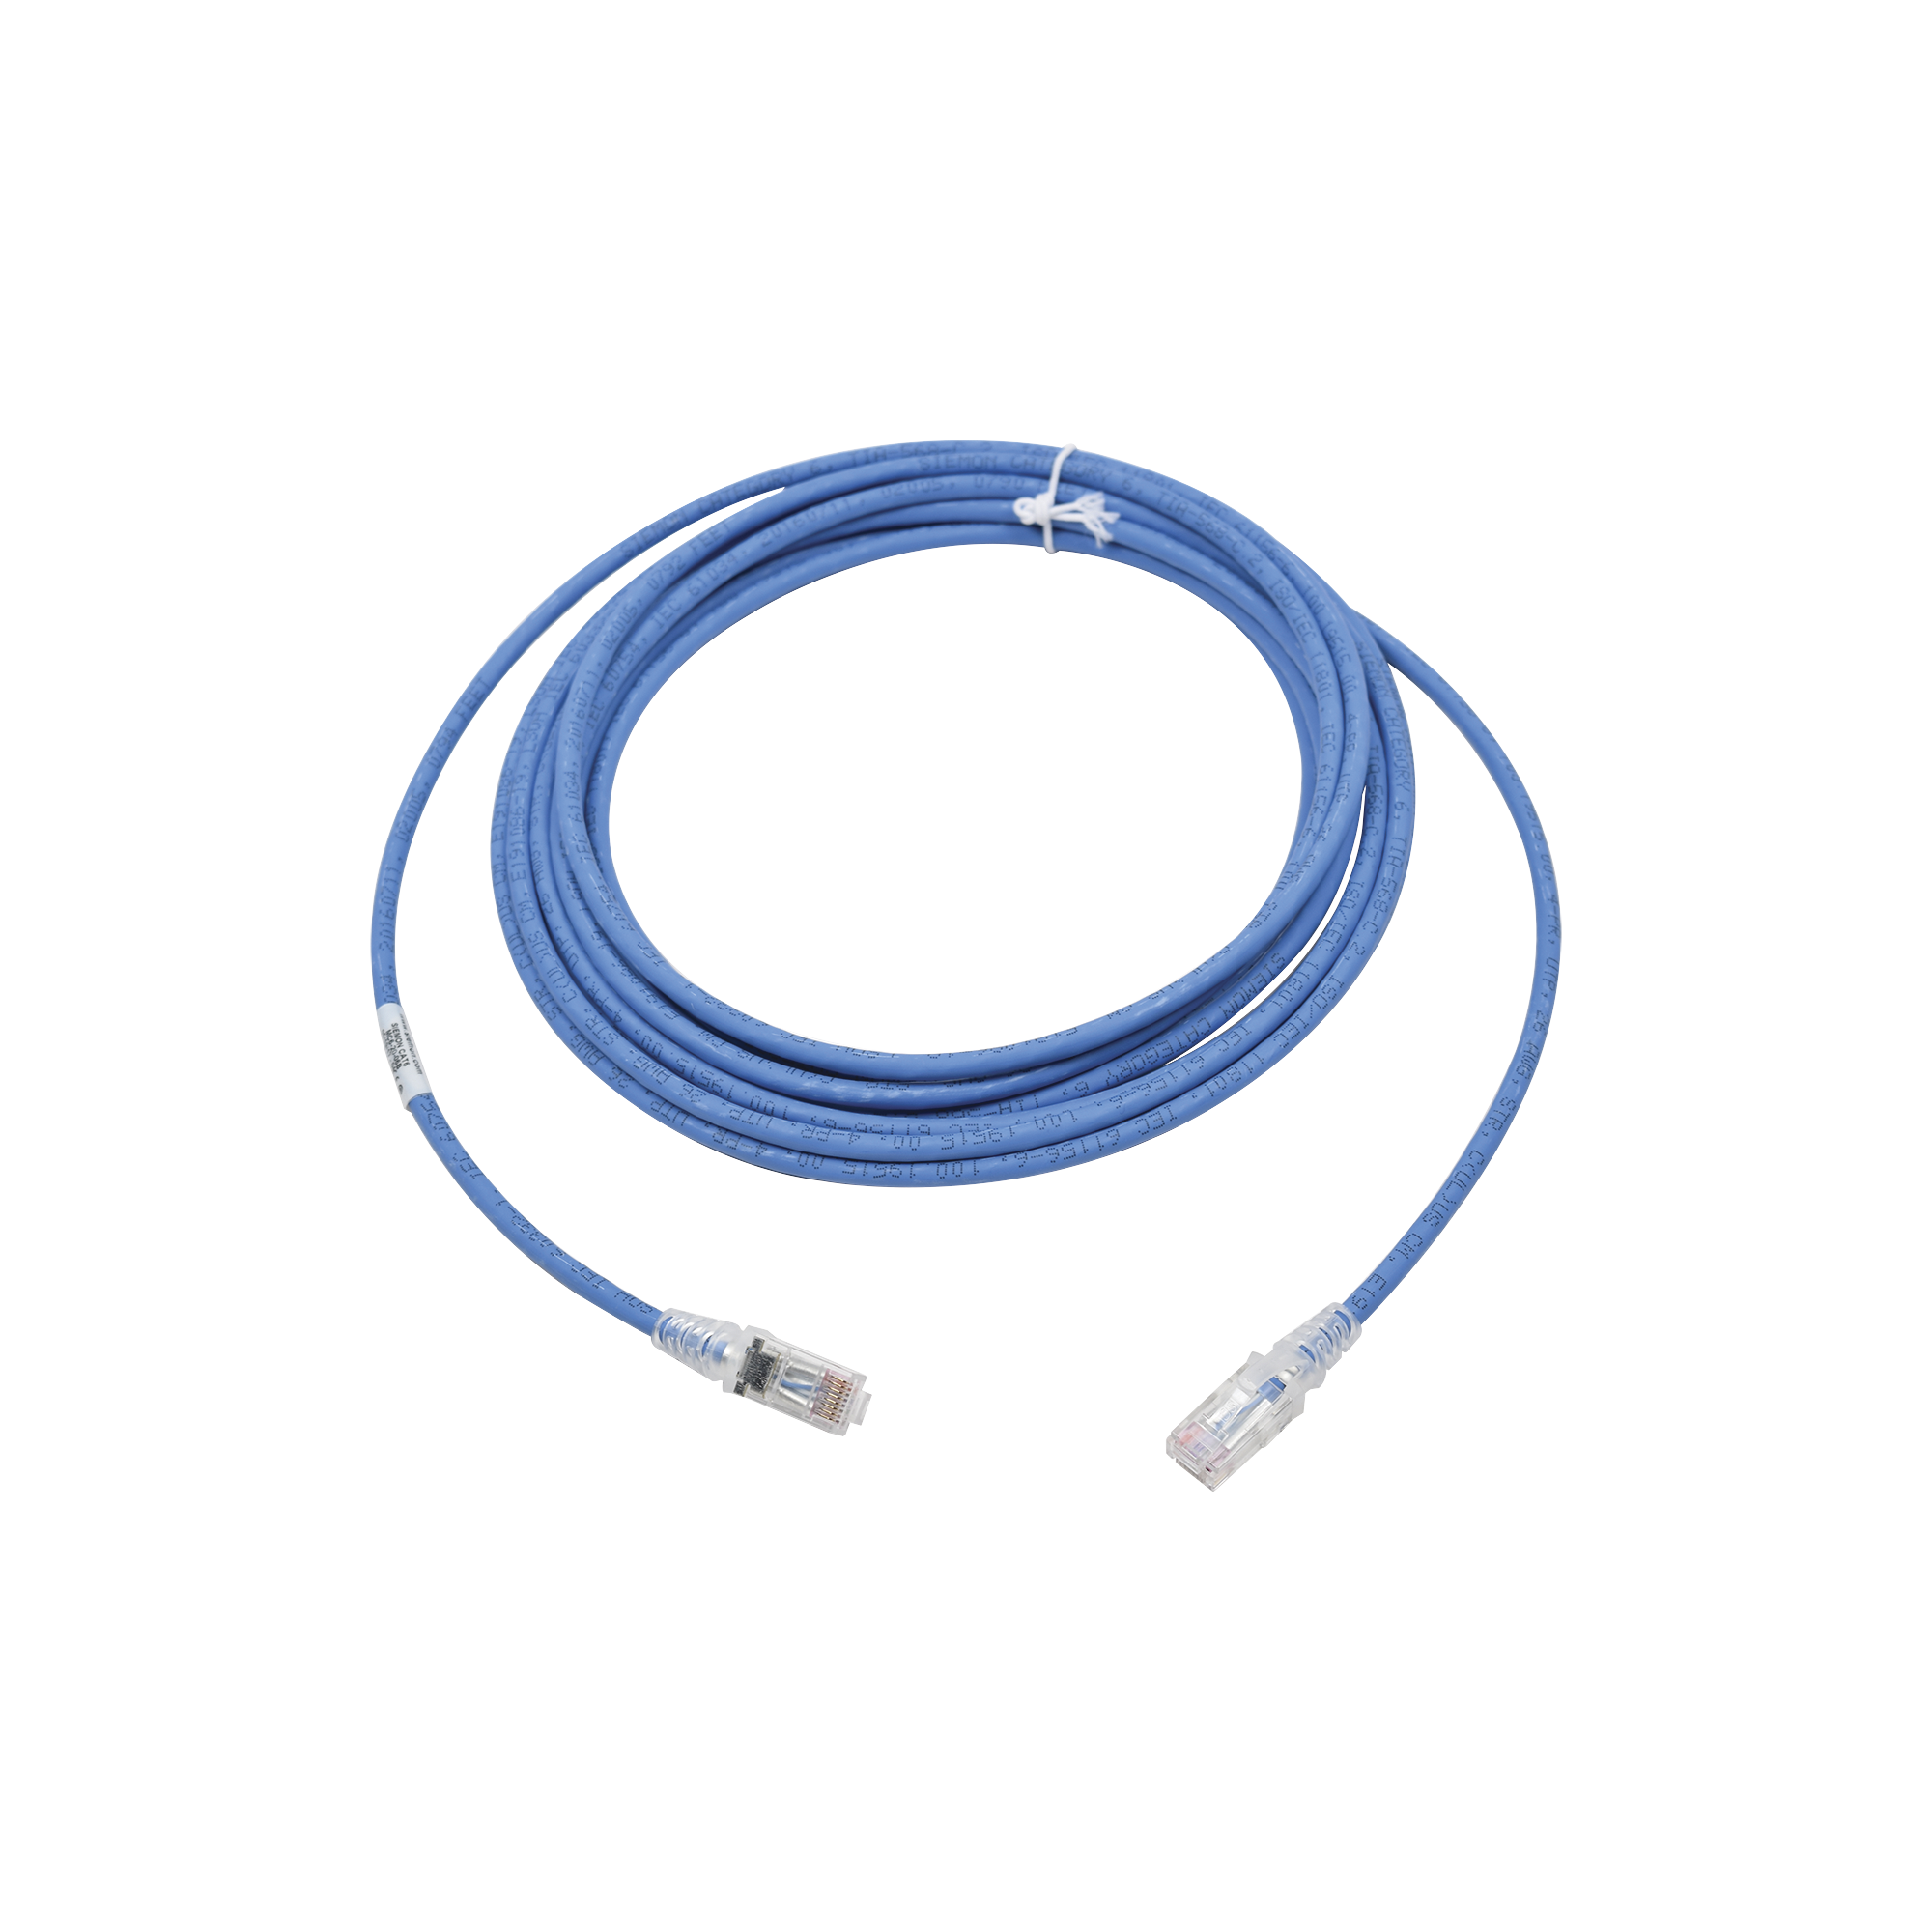 Patch Cord MC6 Modular Cat6 UTP, CM/LS0H, 20ft, Color Azul, Versión Bulk (Sin Empaque Individual)